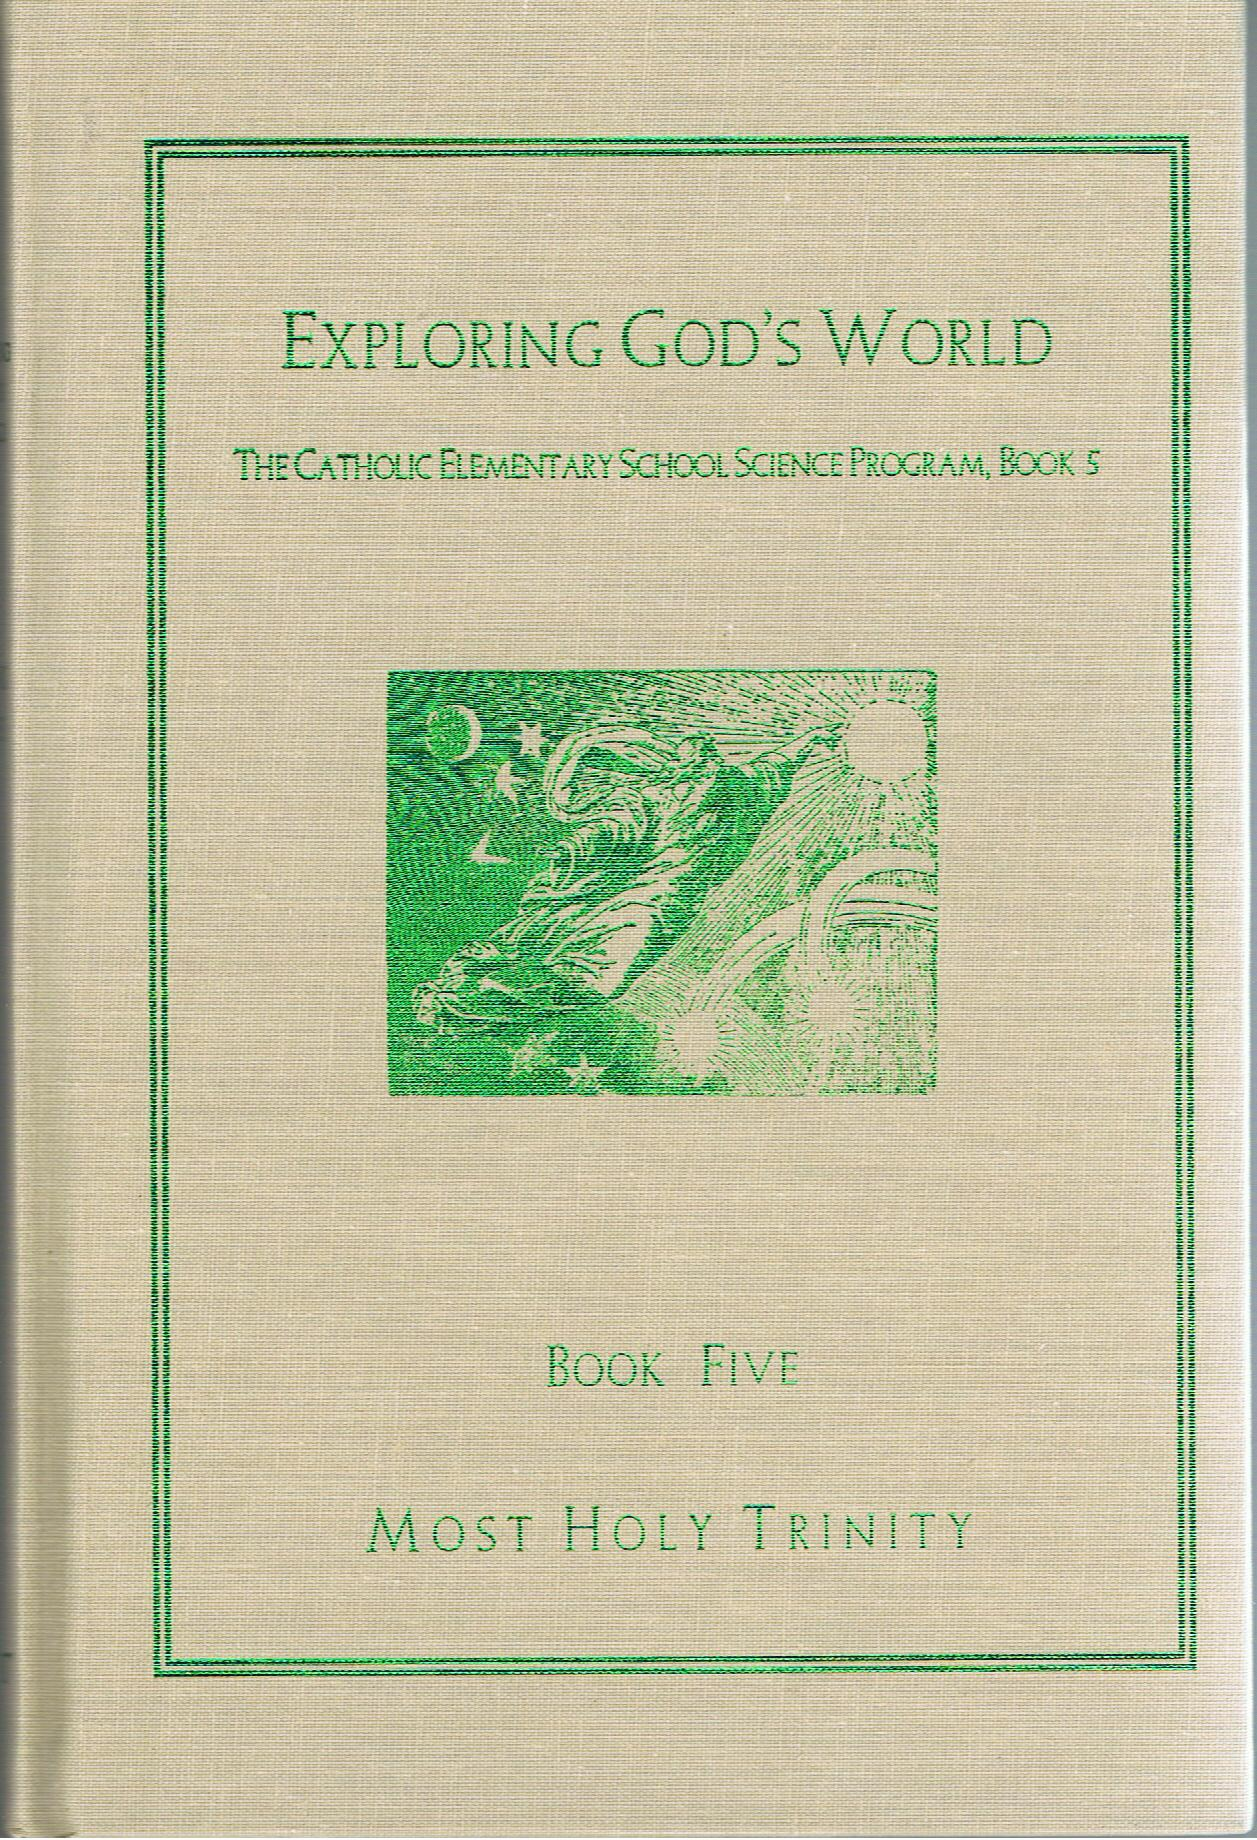 Image for Exploring God's World (The Catholic Elementary School Science Program, Book 5)